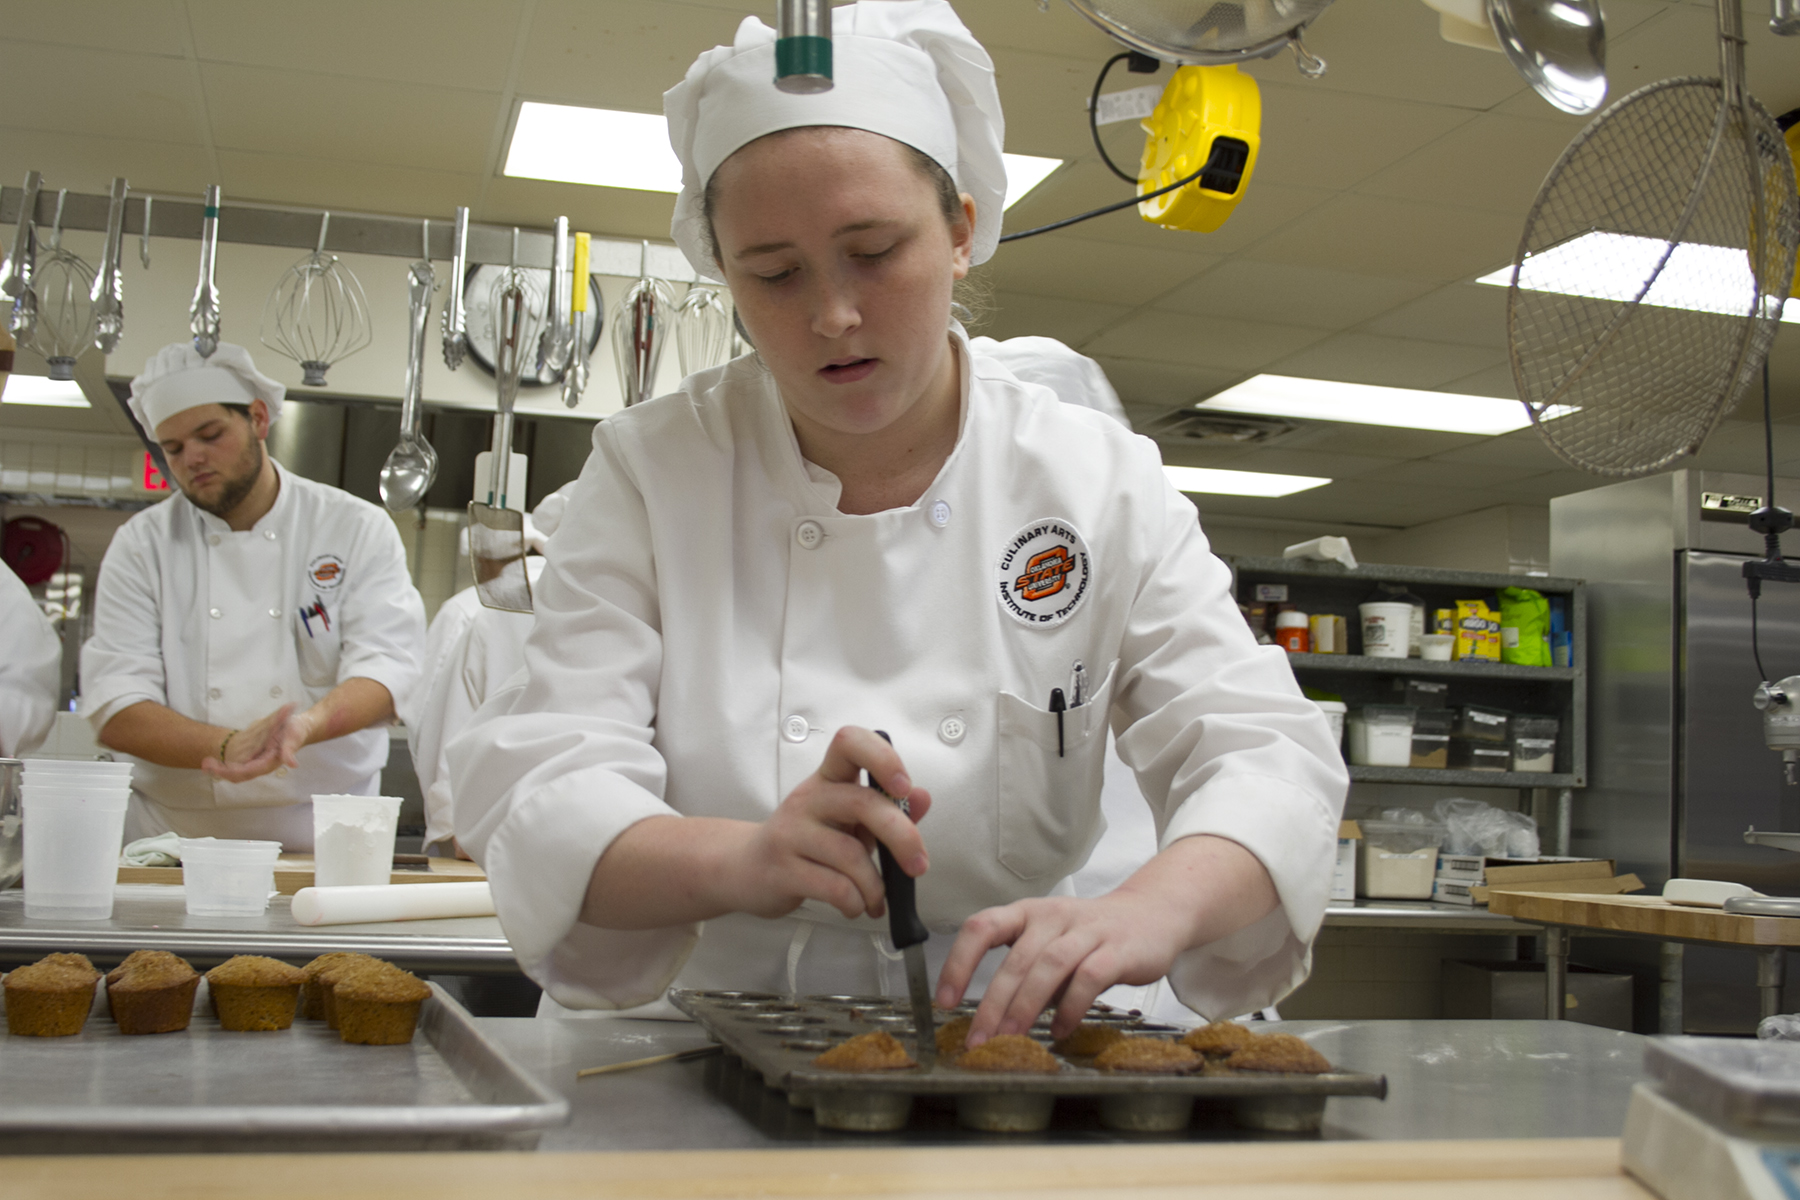 Culinary Class to Sell Baked Goods Out of State Room